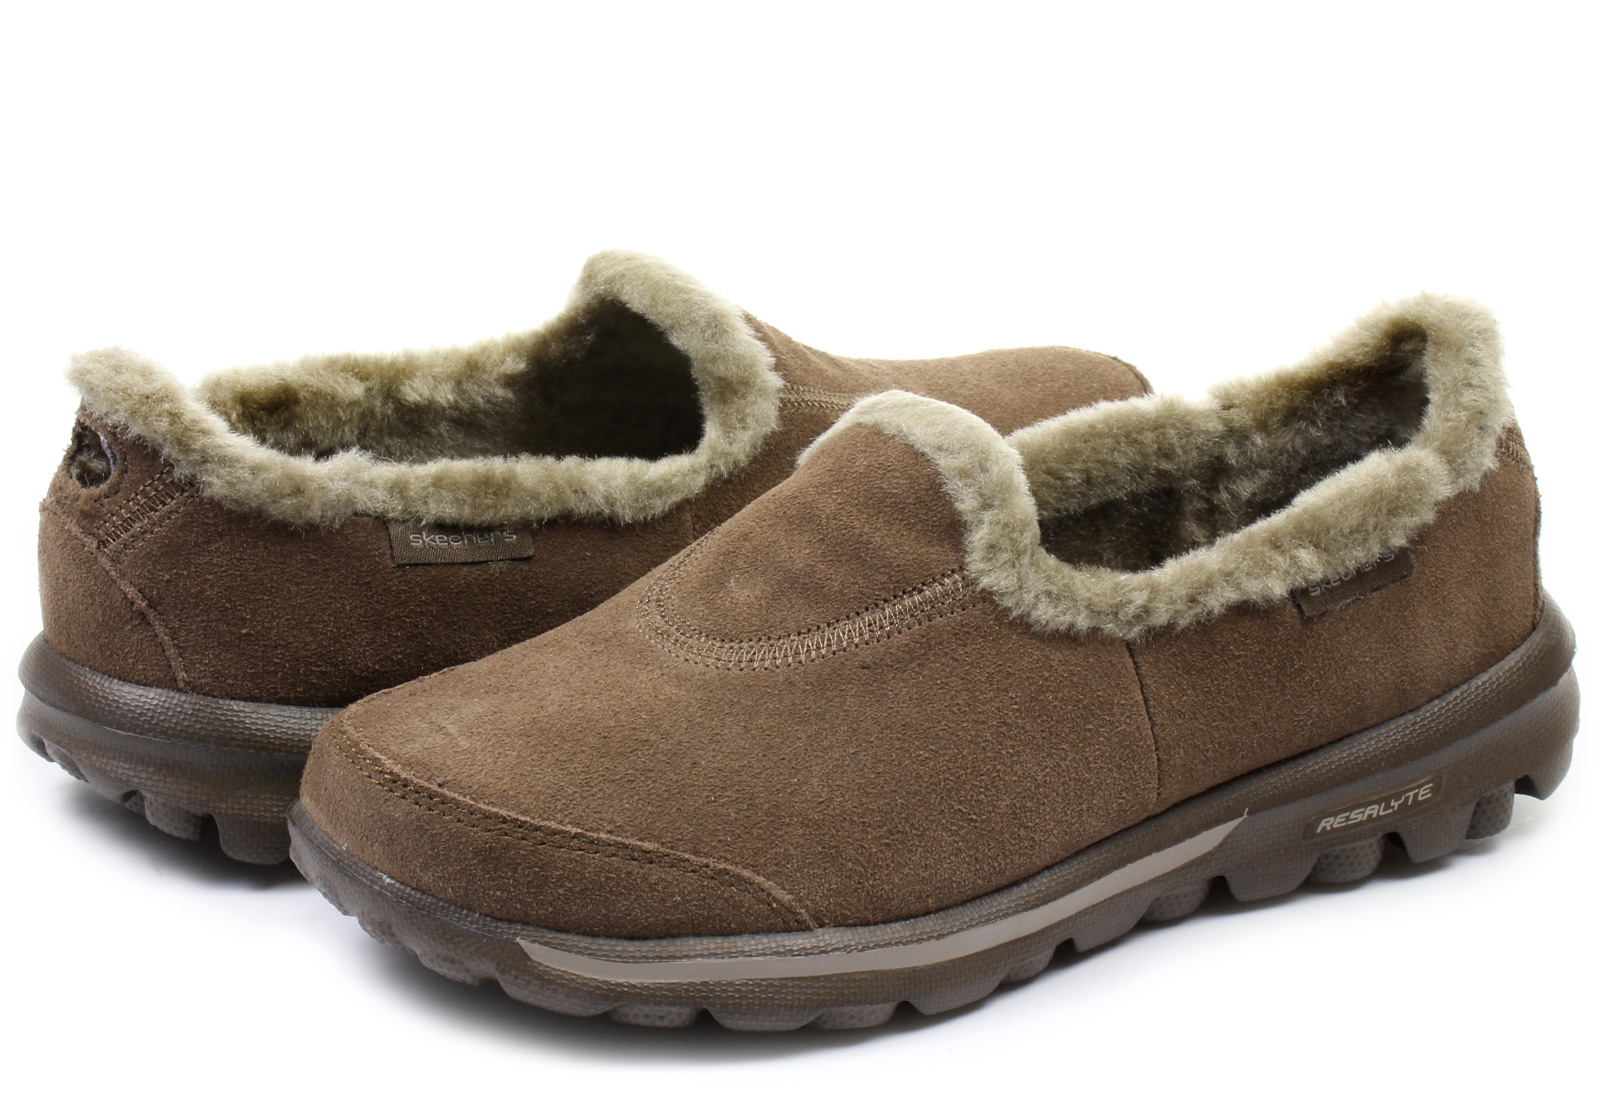 skechers shoes toasty 13533 choc shop for